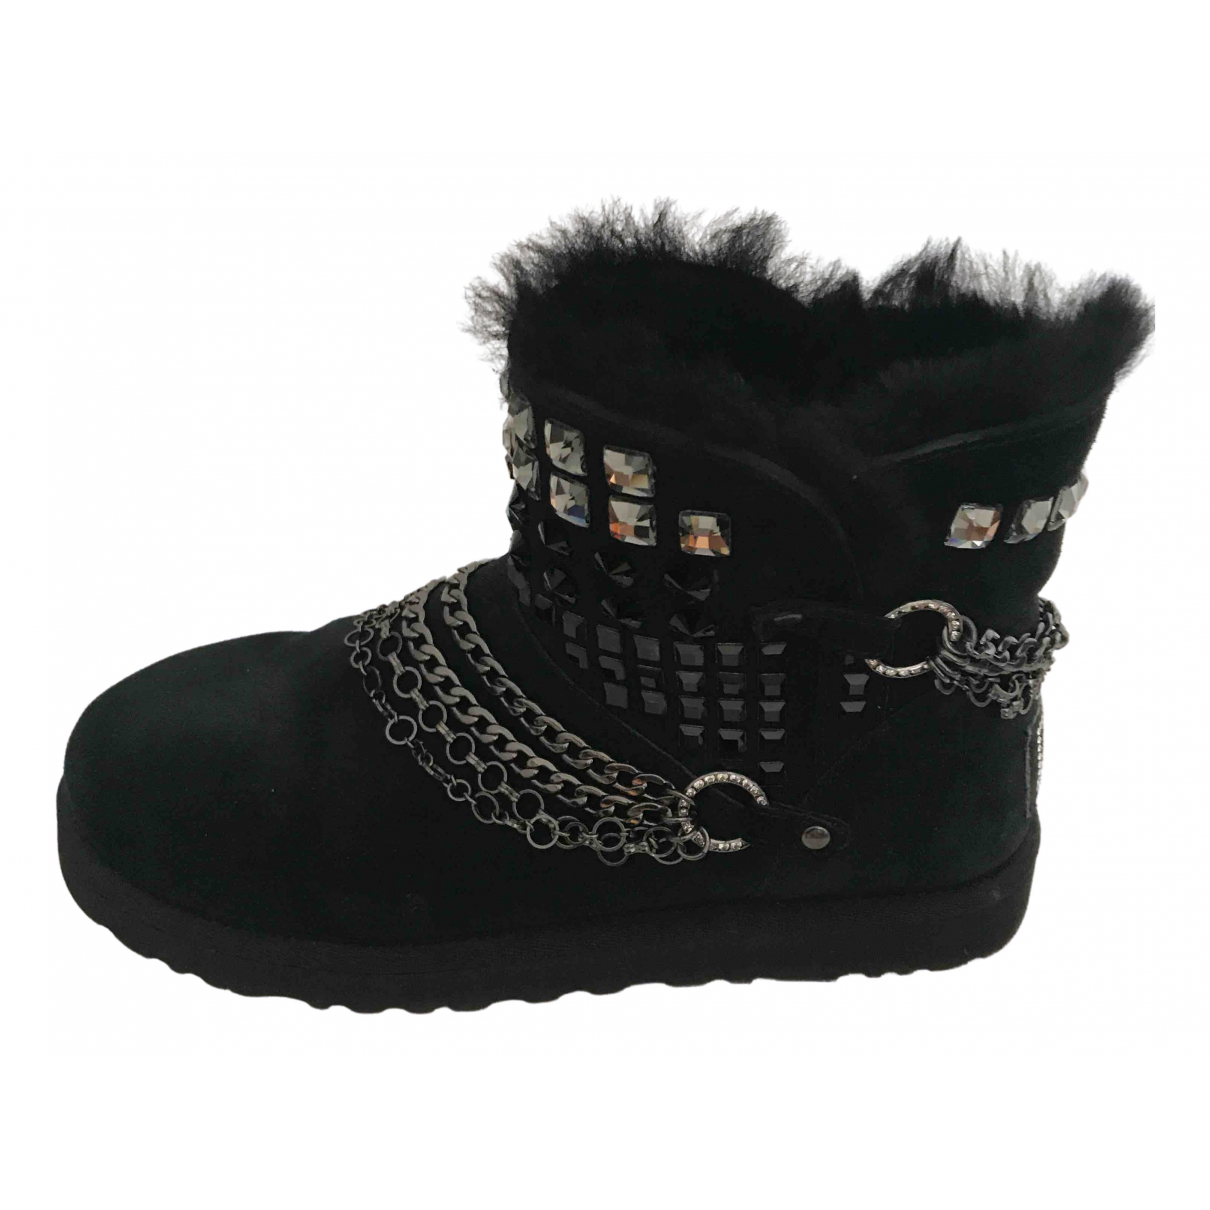 Ugg N Black Leather Boots for Women 37.5 EU